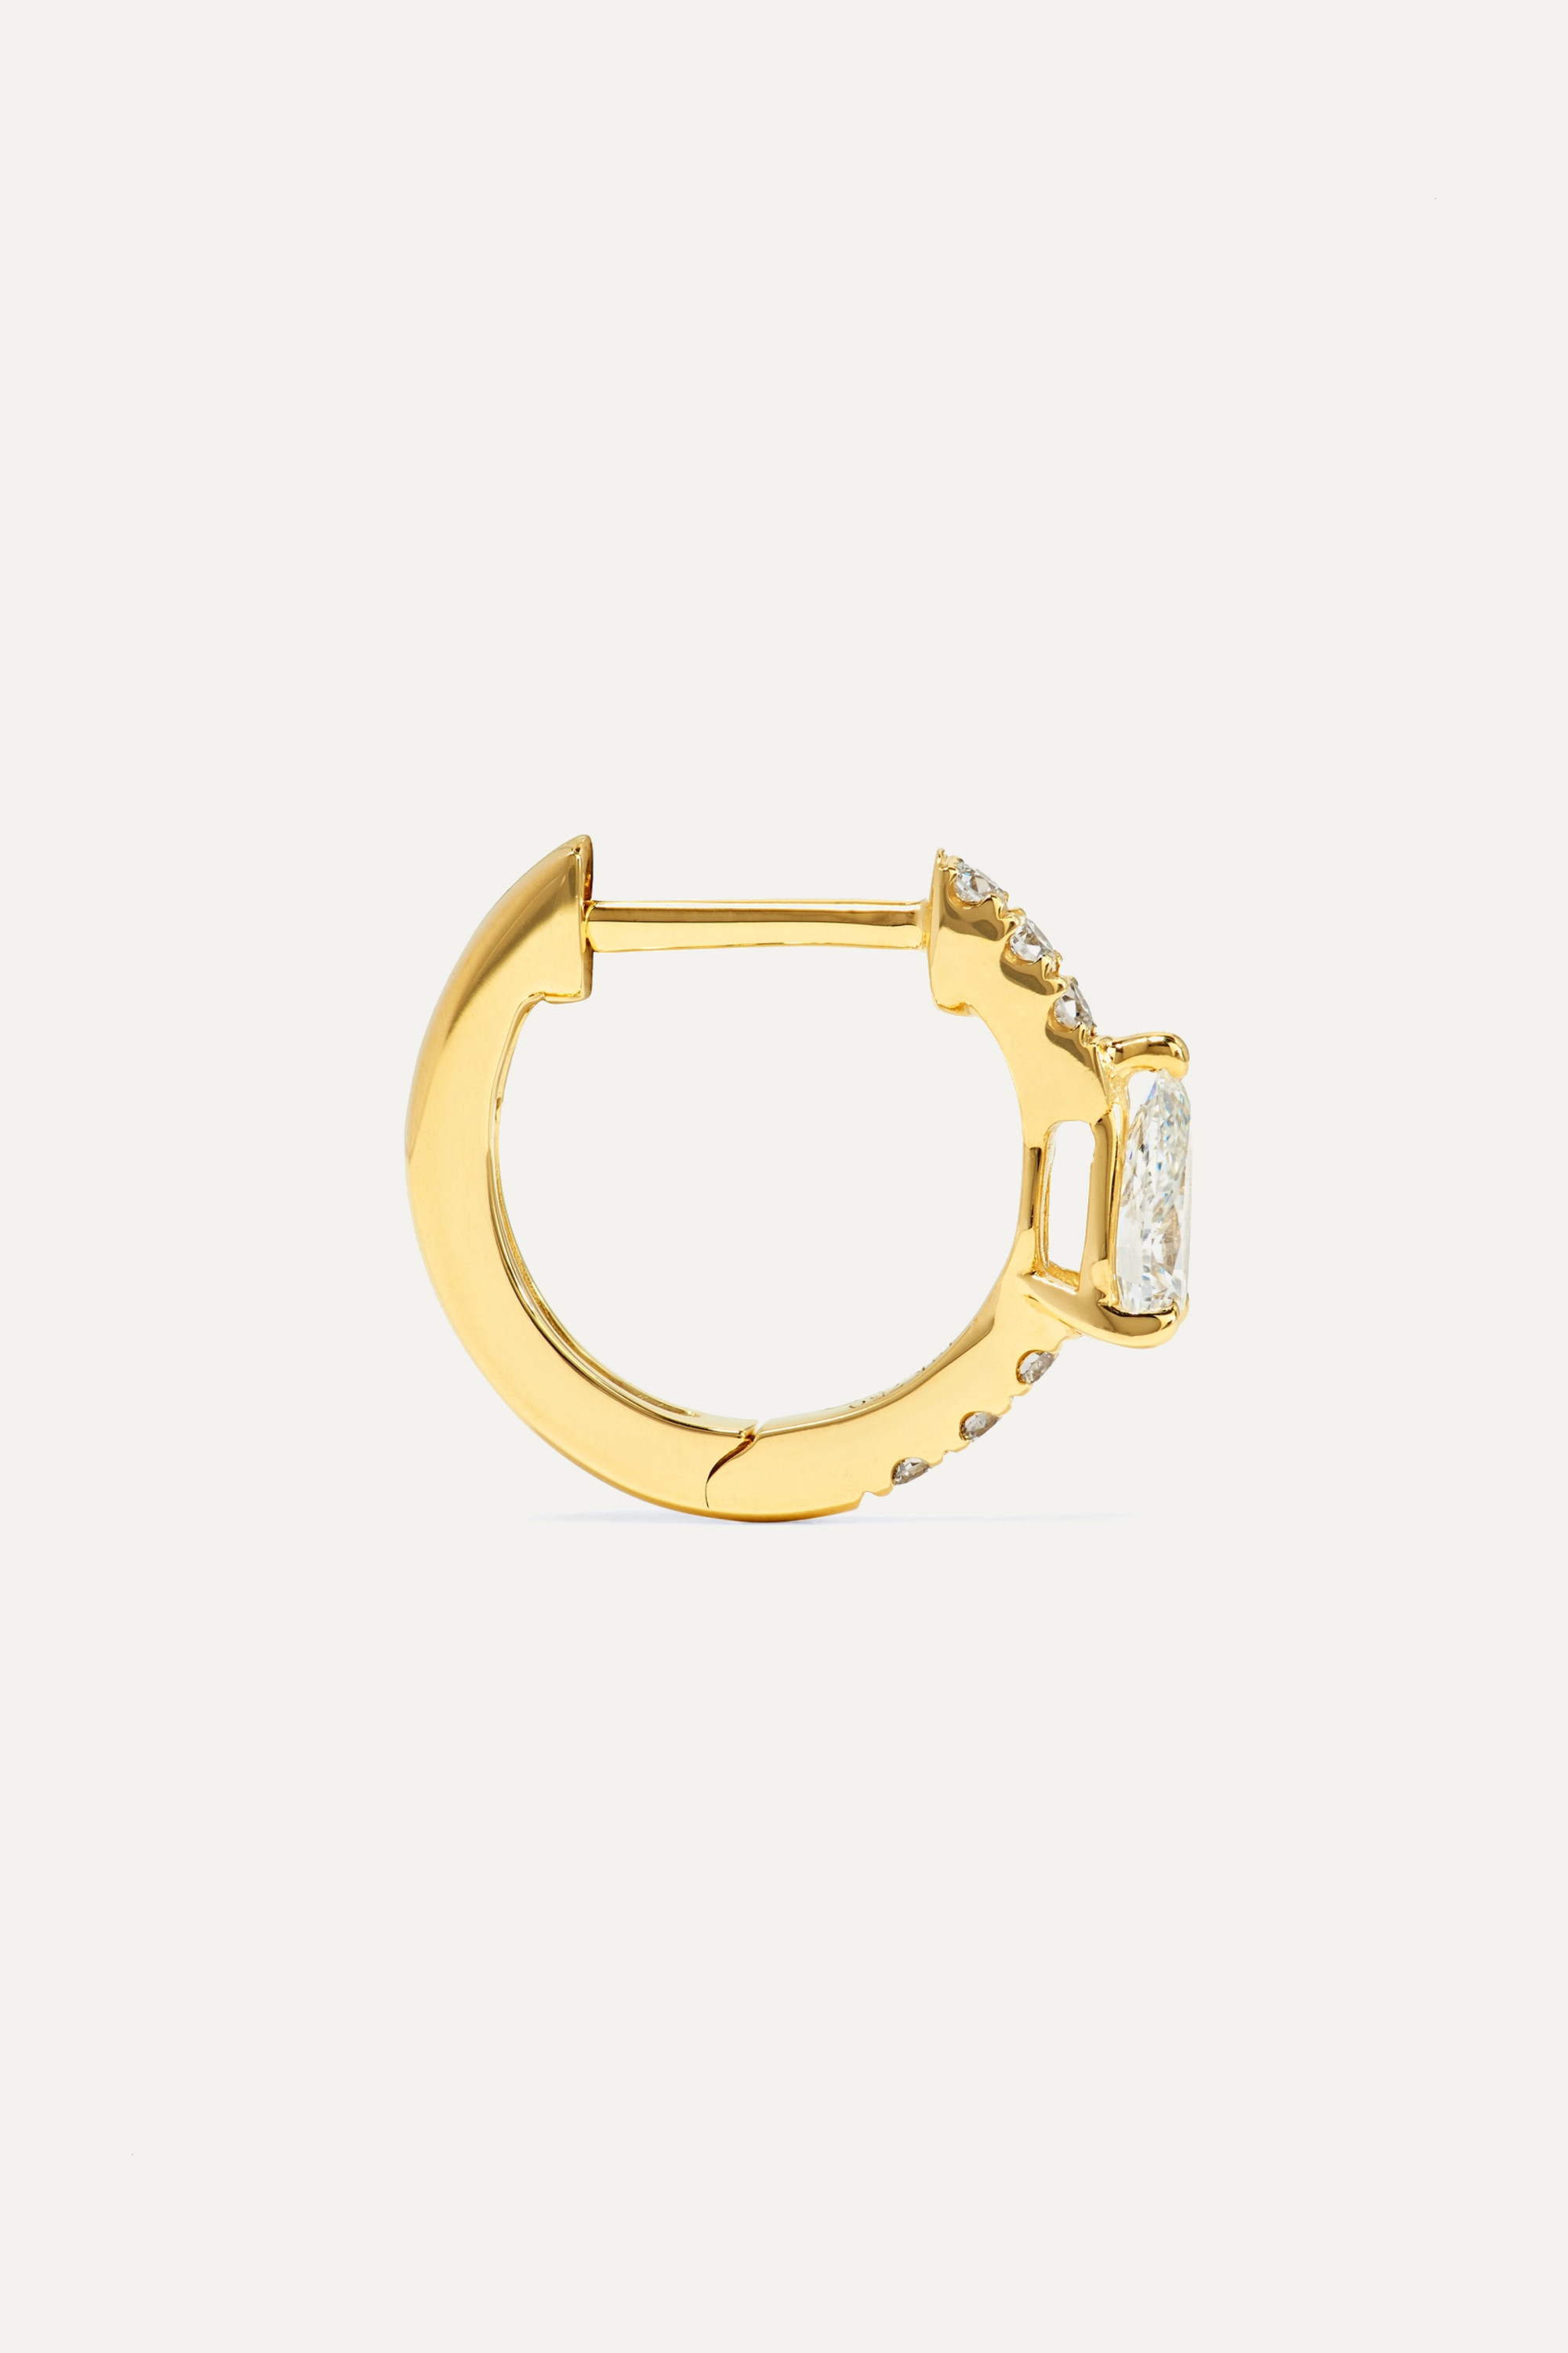 Anita Ko Huggies 18-karat gold diamond earrings